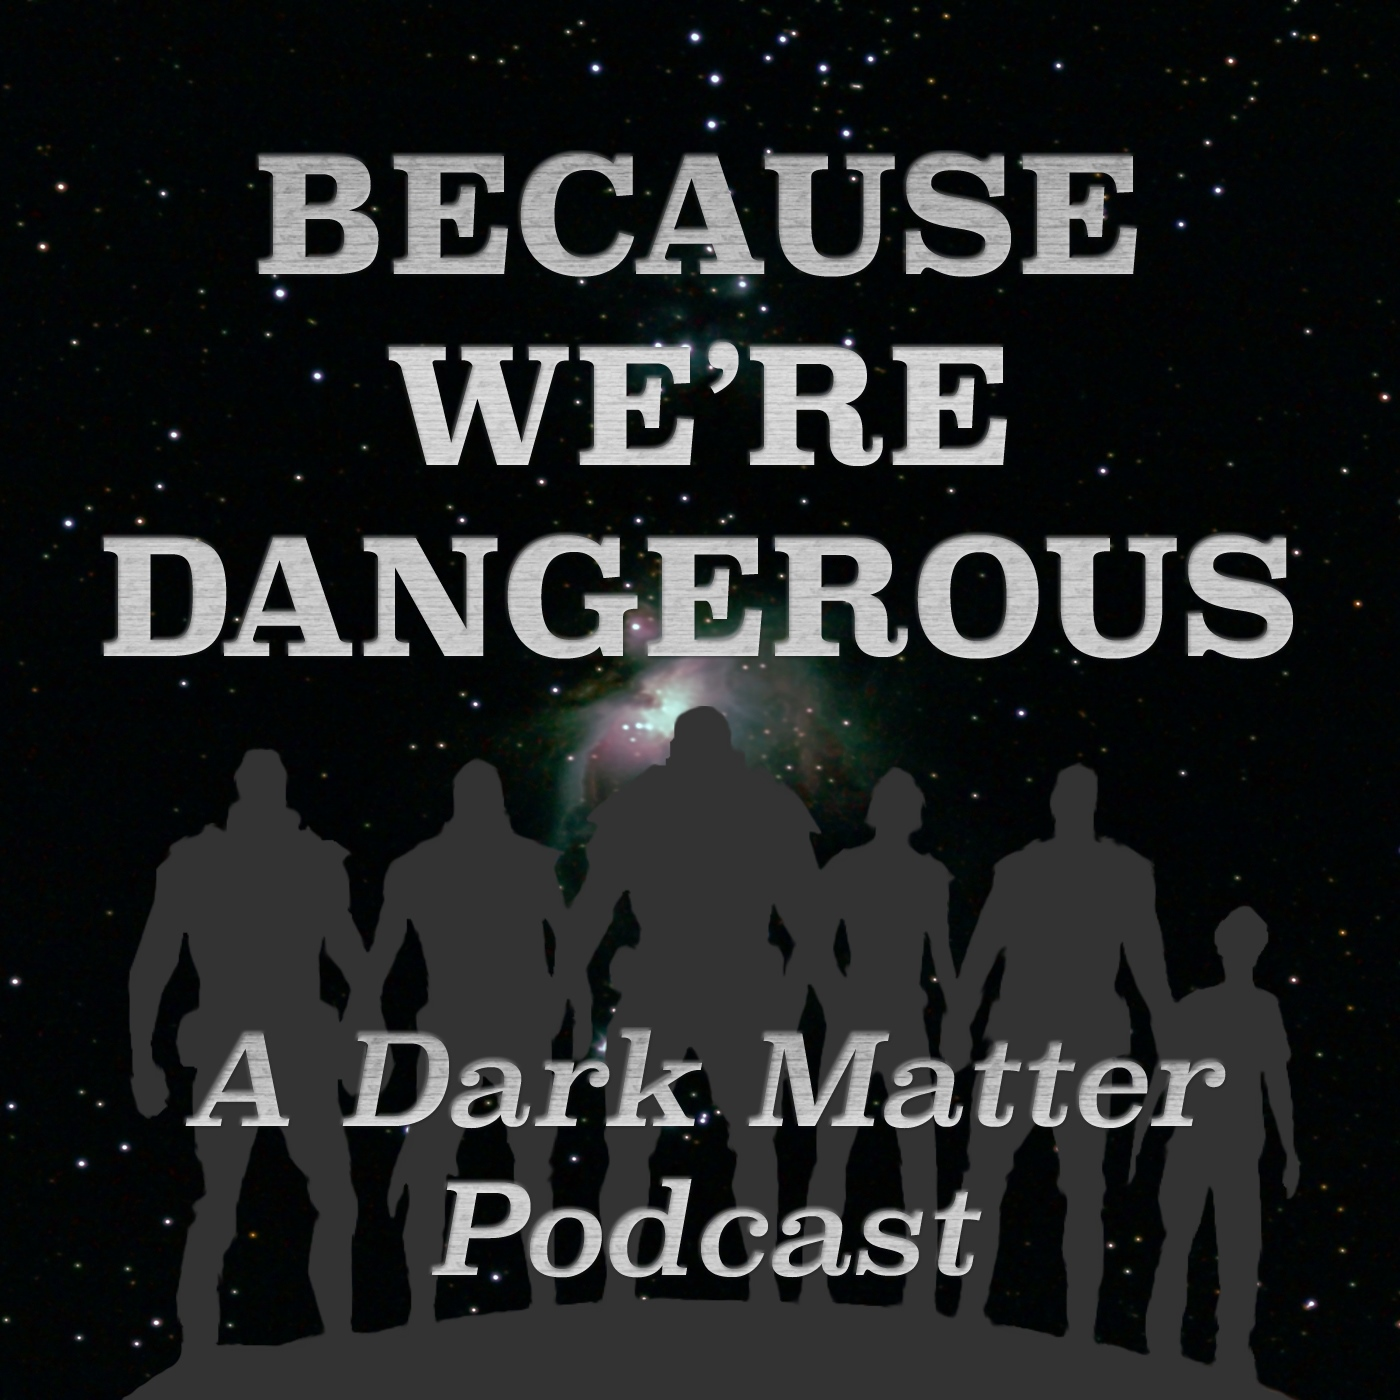 Because We're Dangerous: A Dark Matter Podcast